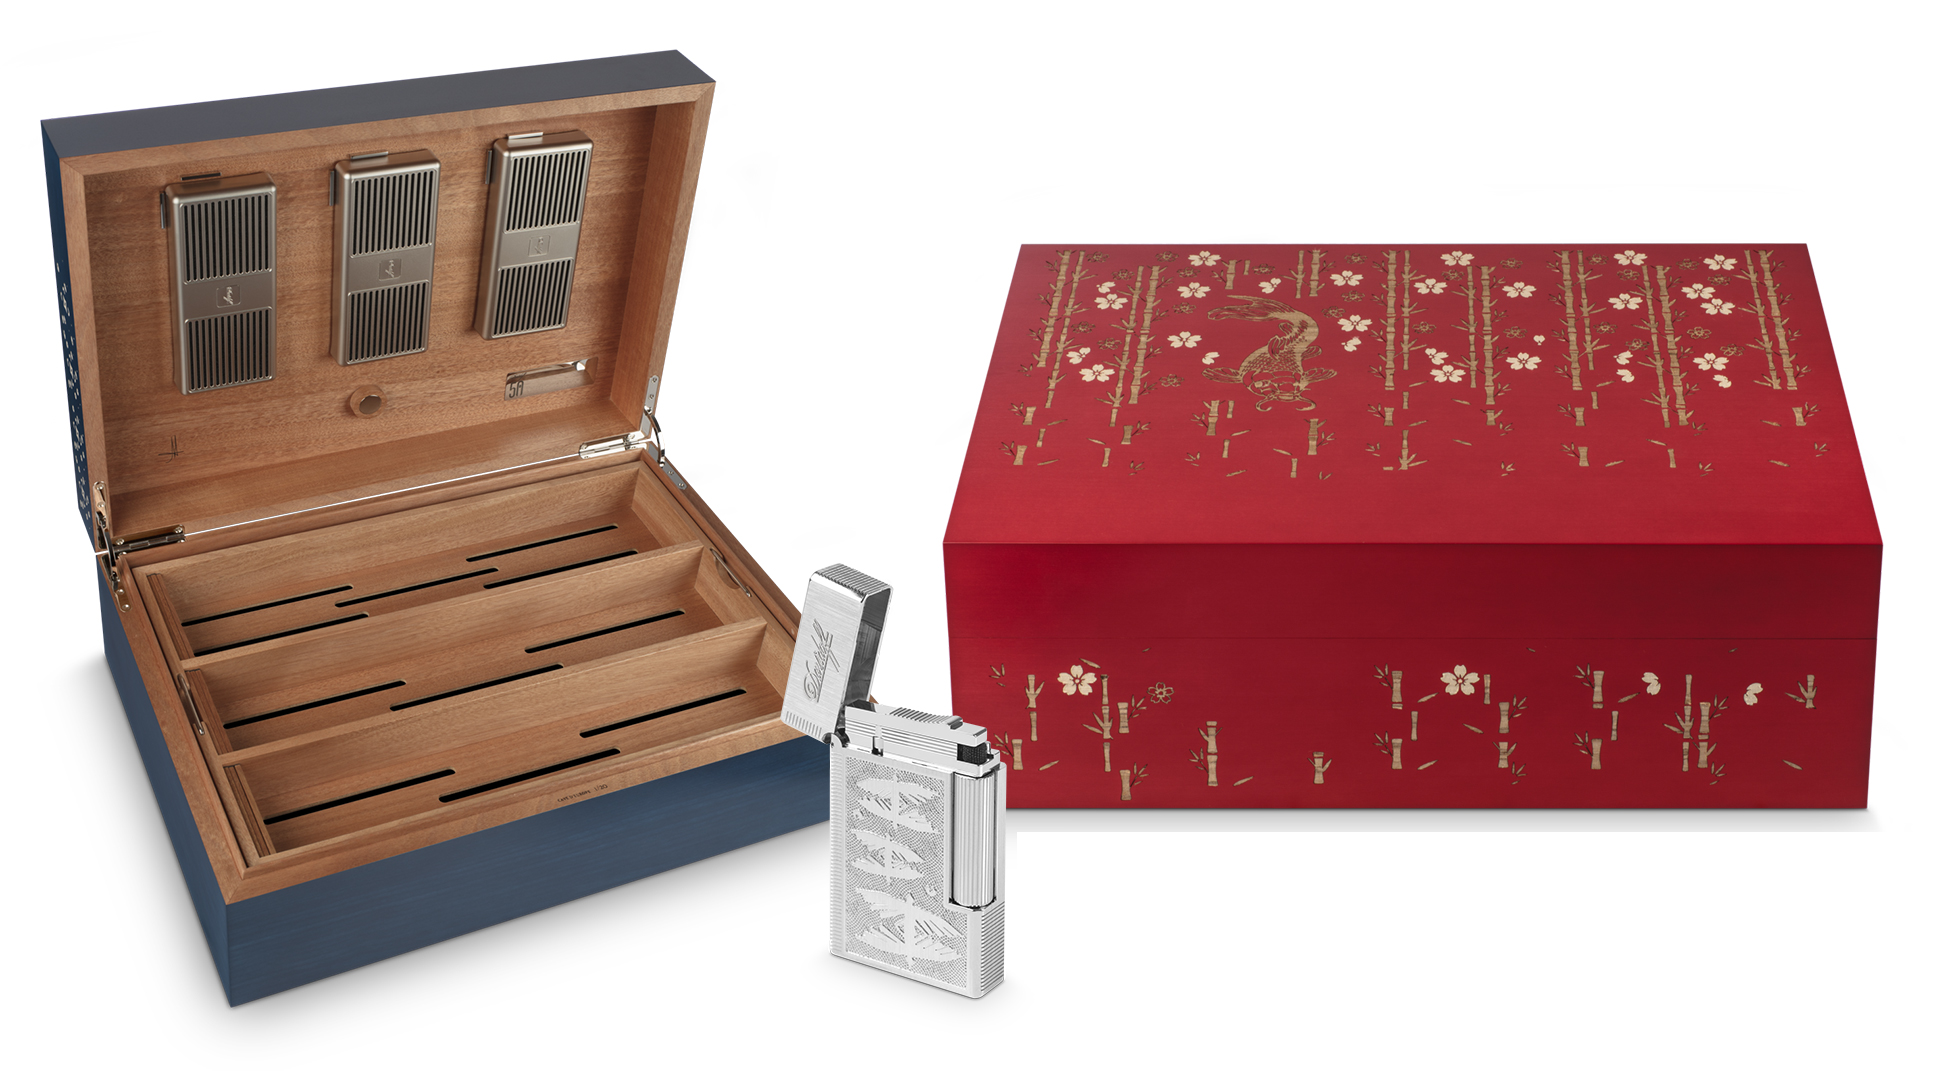 Davidoff Diademas Finas Humidor and Lighter